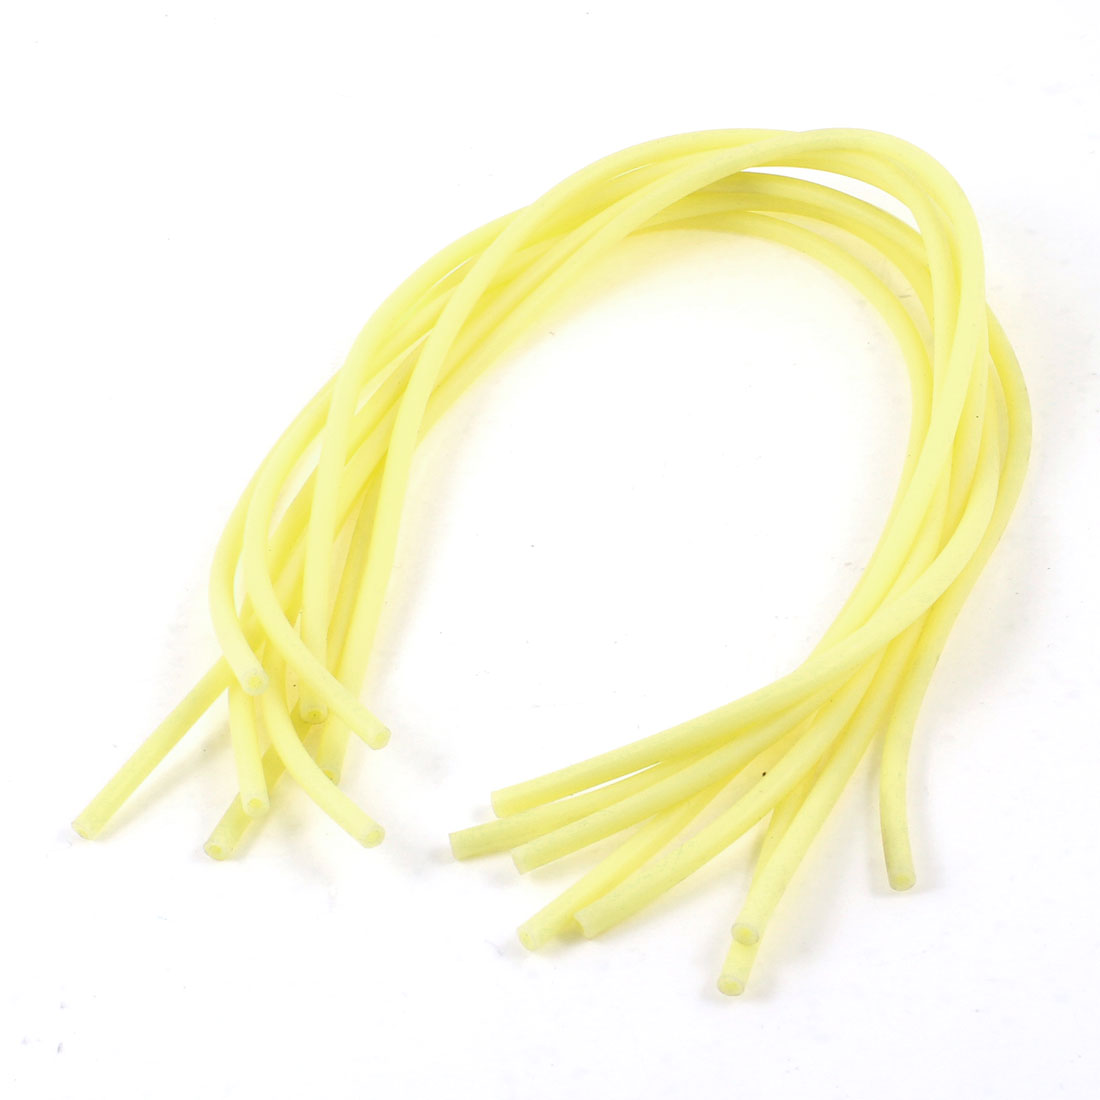 "9 Pcs 13.4"" Long Ivory Soft Rubber Tubing Replascement for Bicycle Valve"